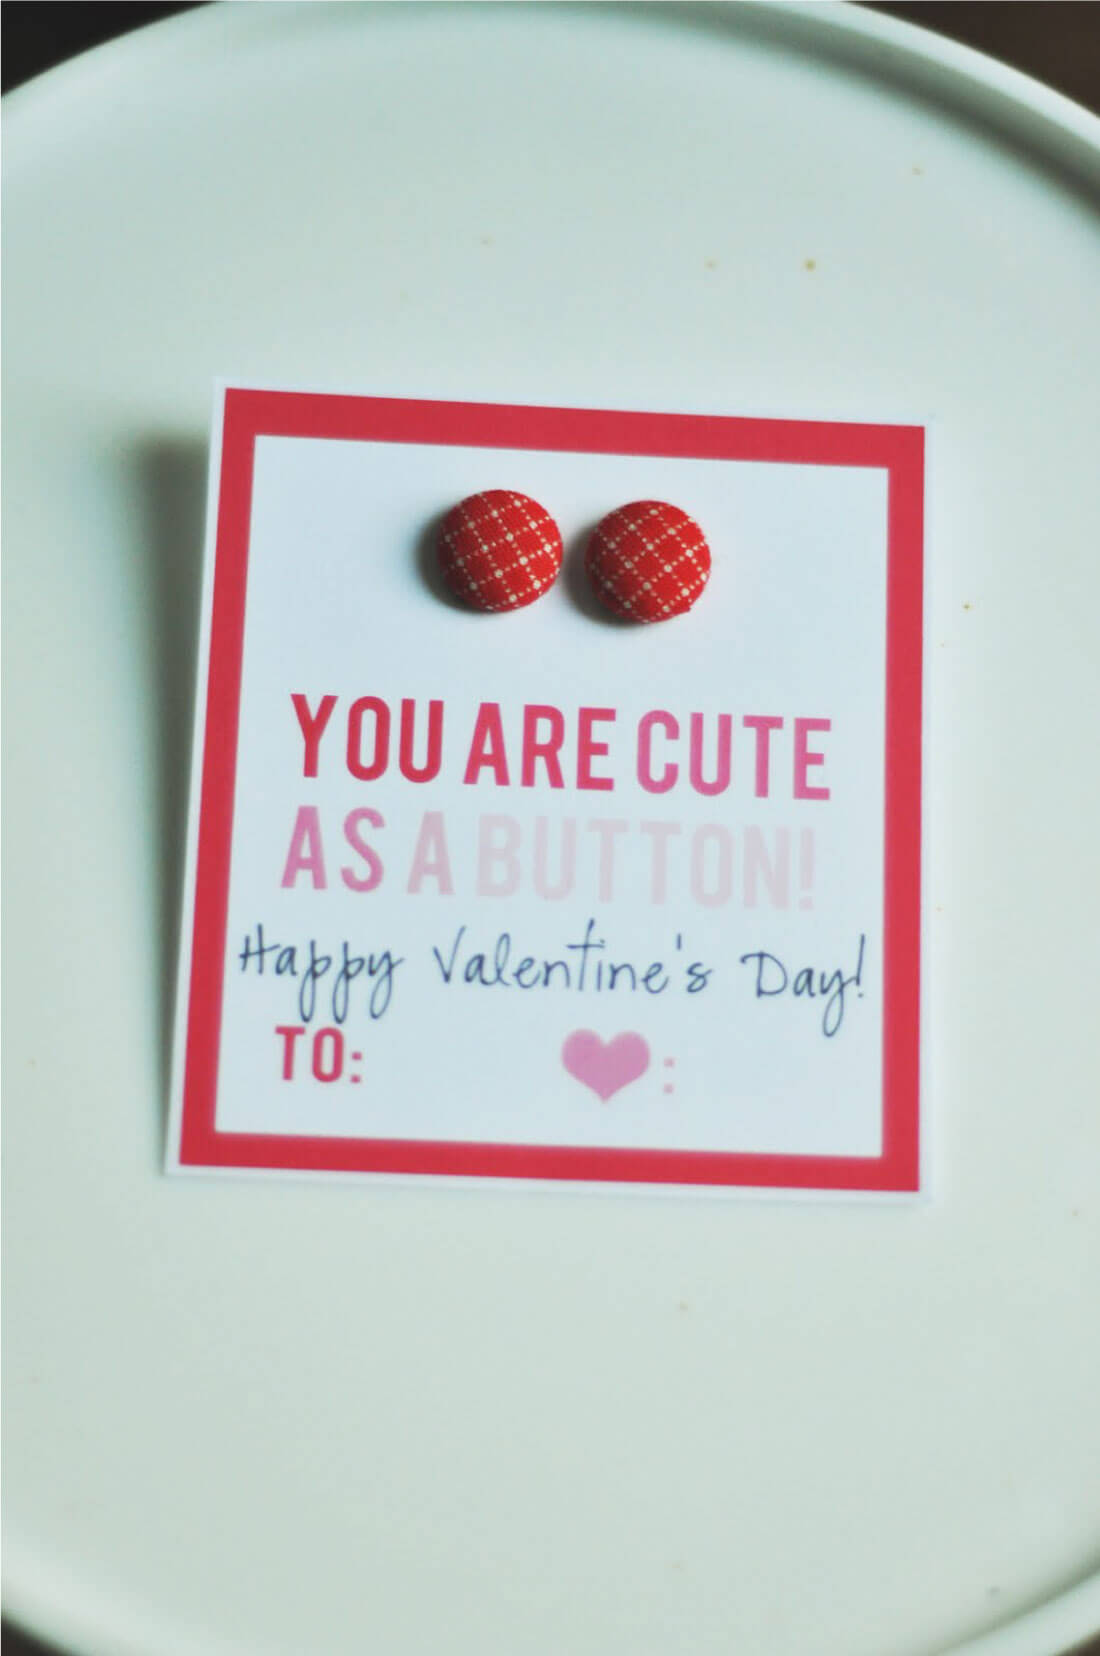 Valentines Day Gift Idea- you are cute as a button!